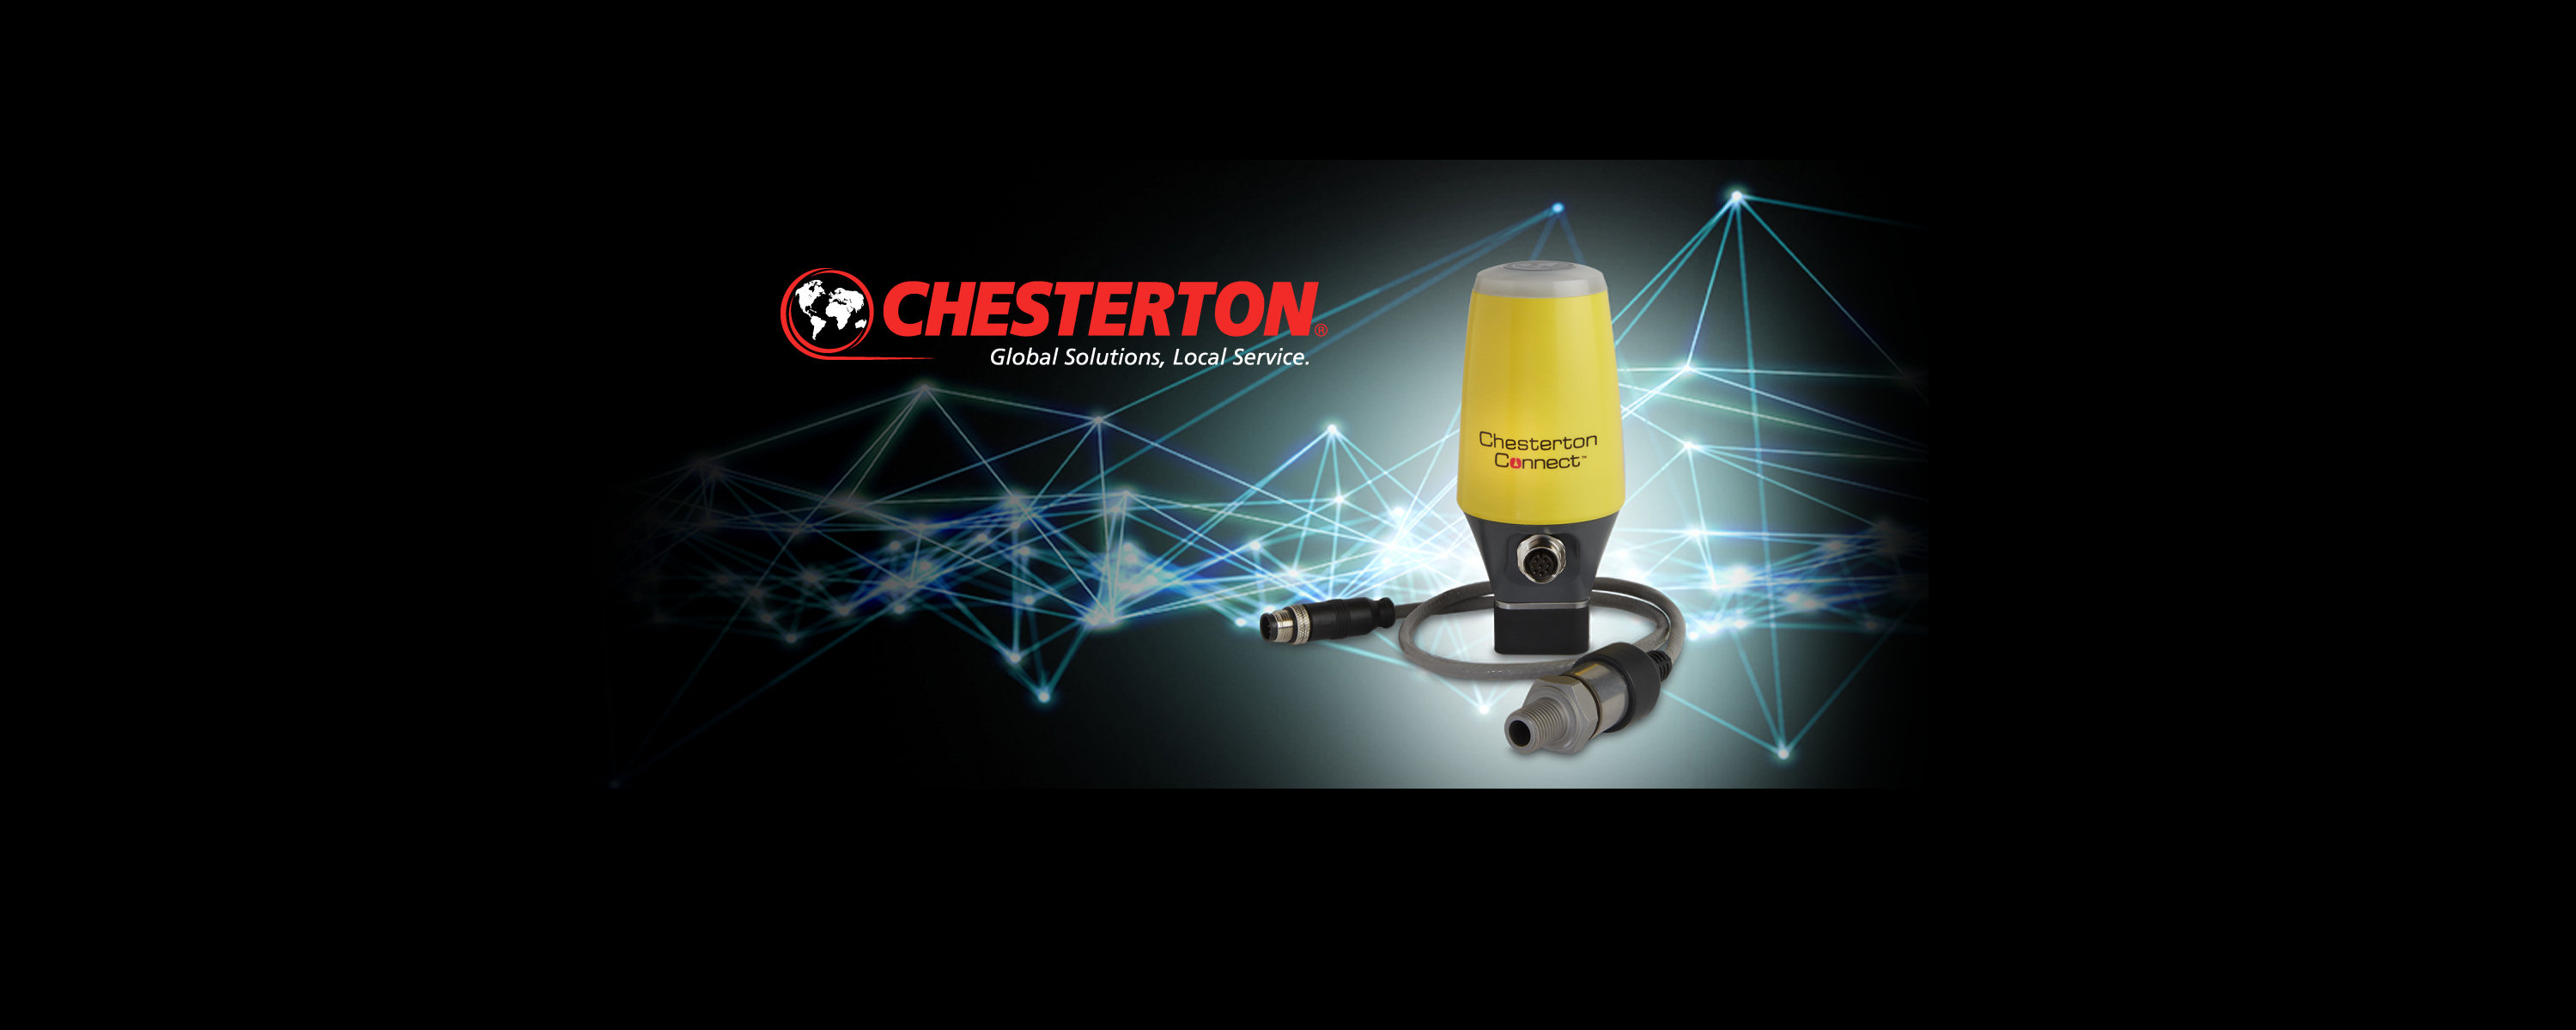 New Arrival! Chesterton Equipment Health Monitor